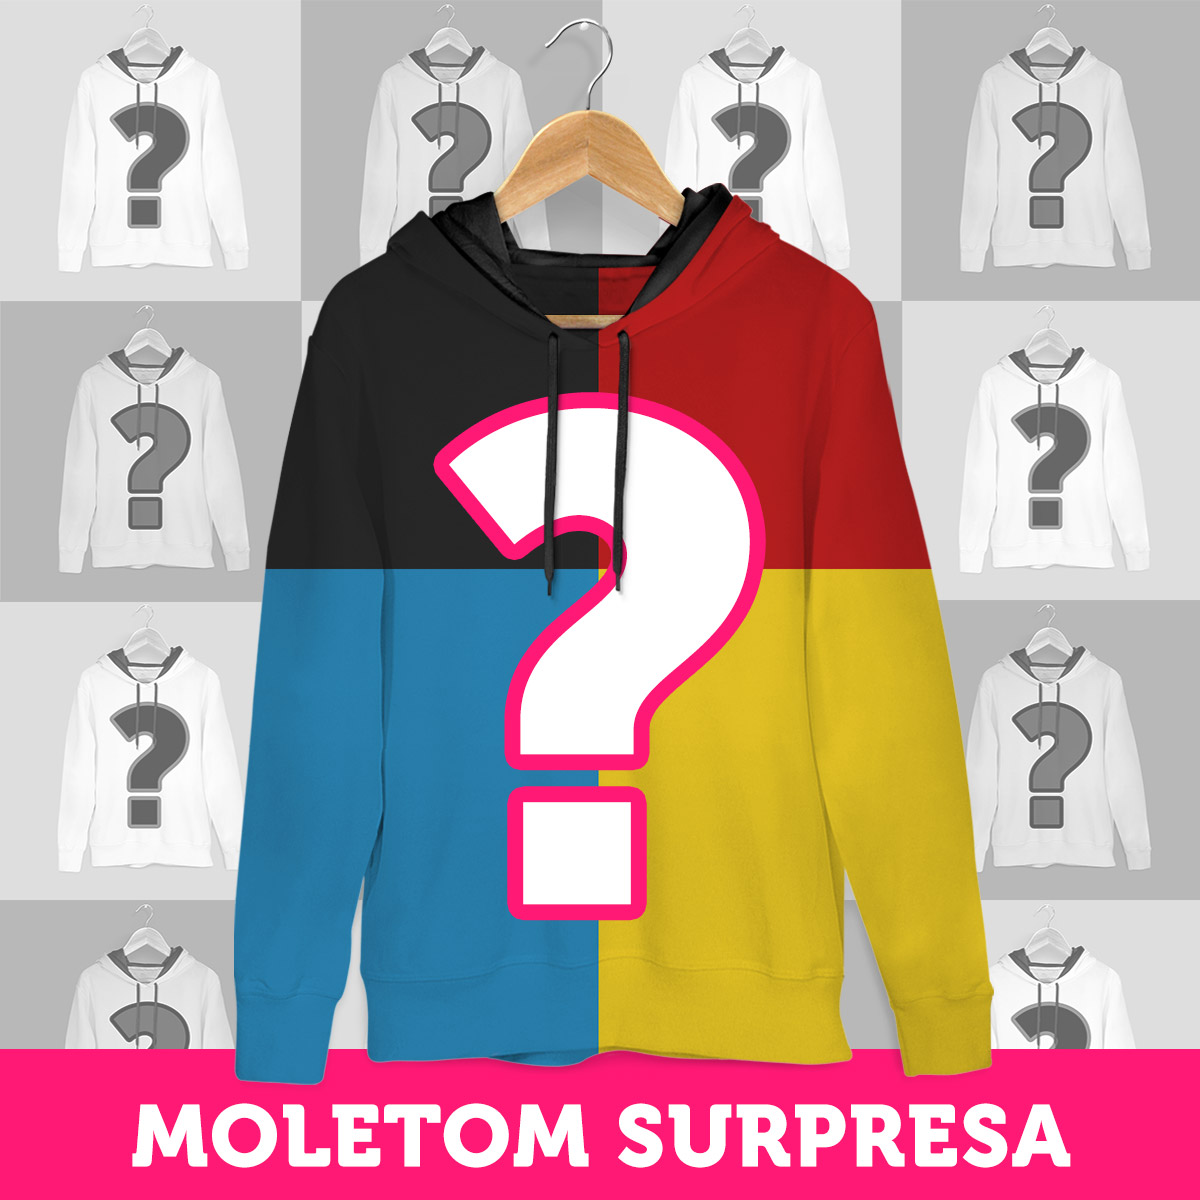 Moletom SURPRESA!